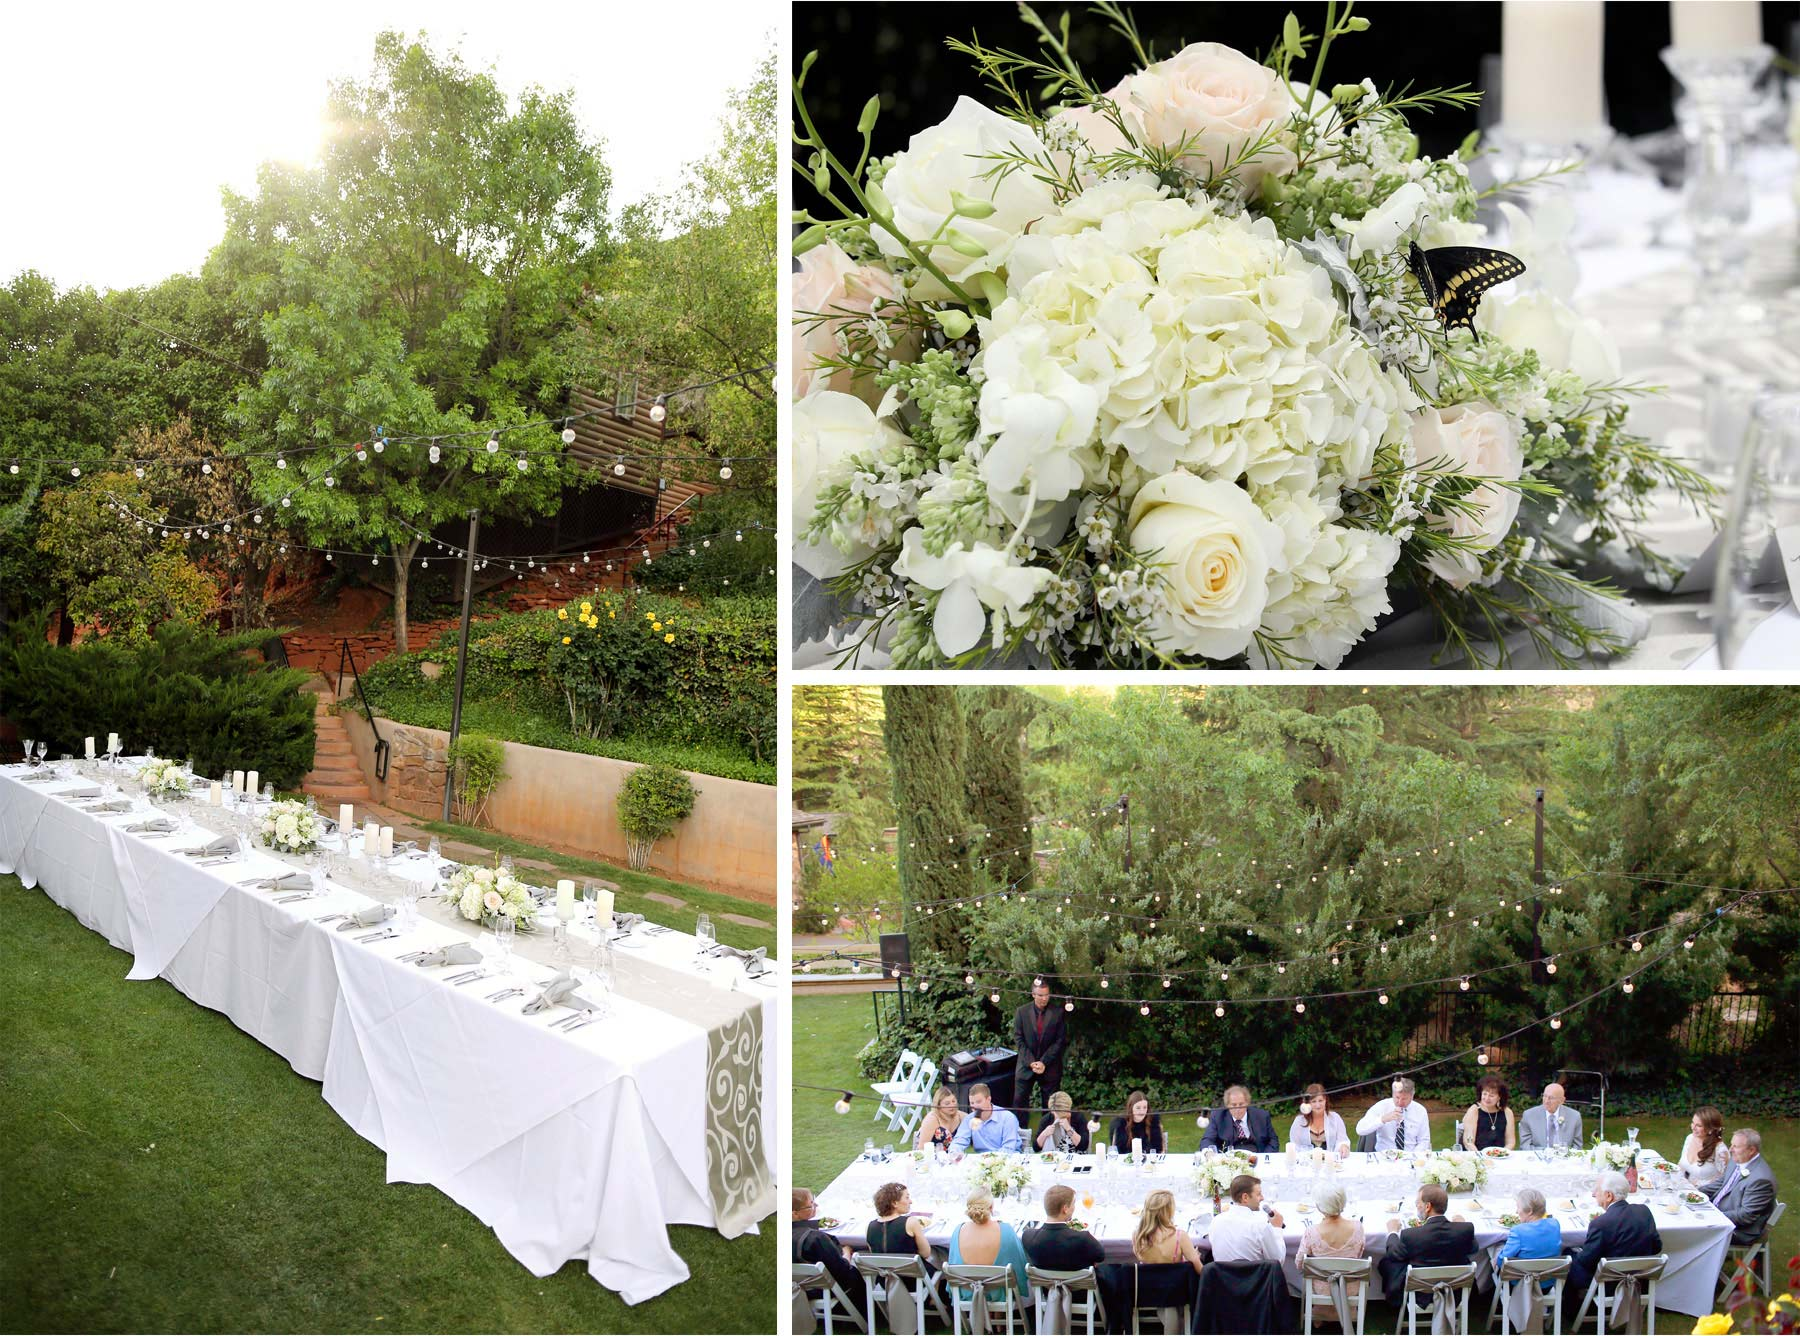 21-Sedona-Arizona-Wedding-Photographer-by-Andrew-Vick-Photography-Spring--LAuberge-de-Sedona-Resort-Reception-Garden-Lawn-Bride-Groom-Guests-Flowers-Butterfly-Decor-Details-Decorations-Speeches-Barbara-and-Mike.jpg